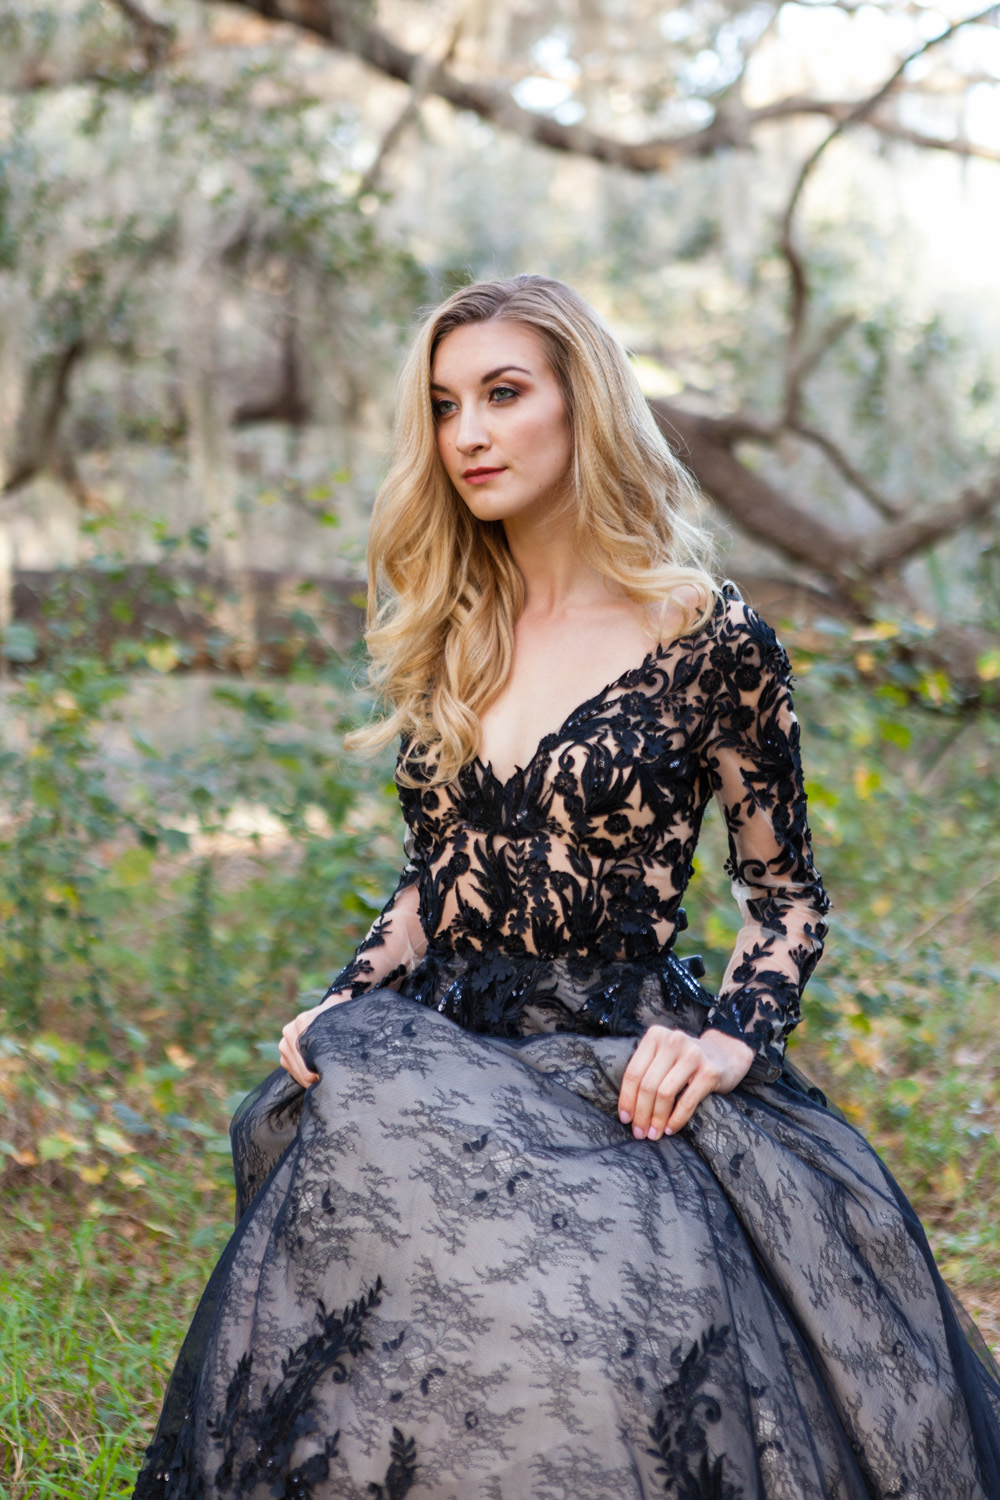 styled shoot with black wedding dress